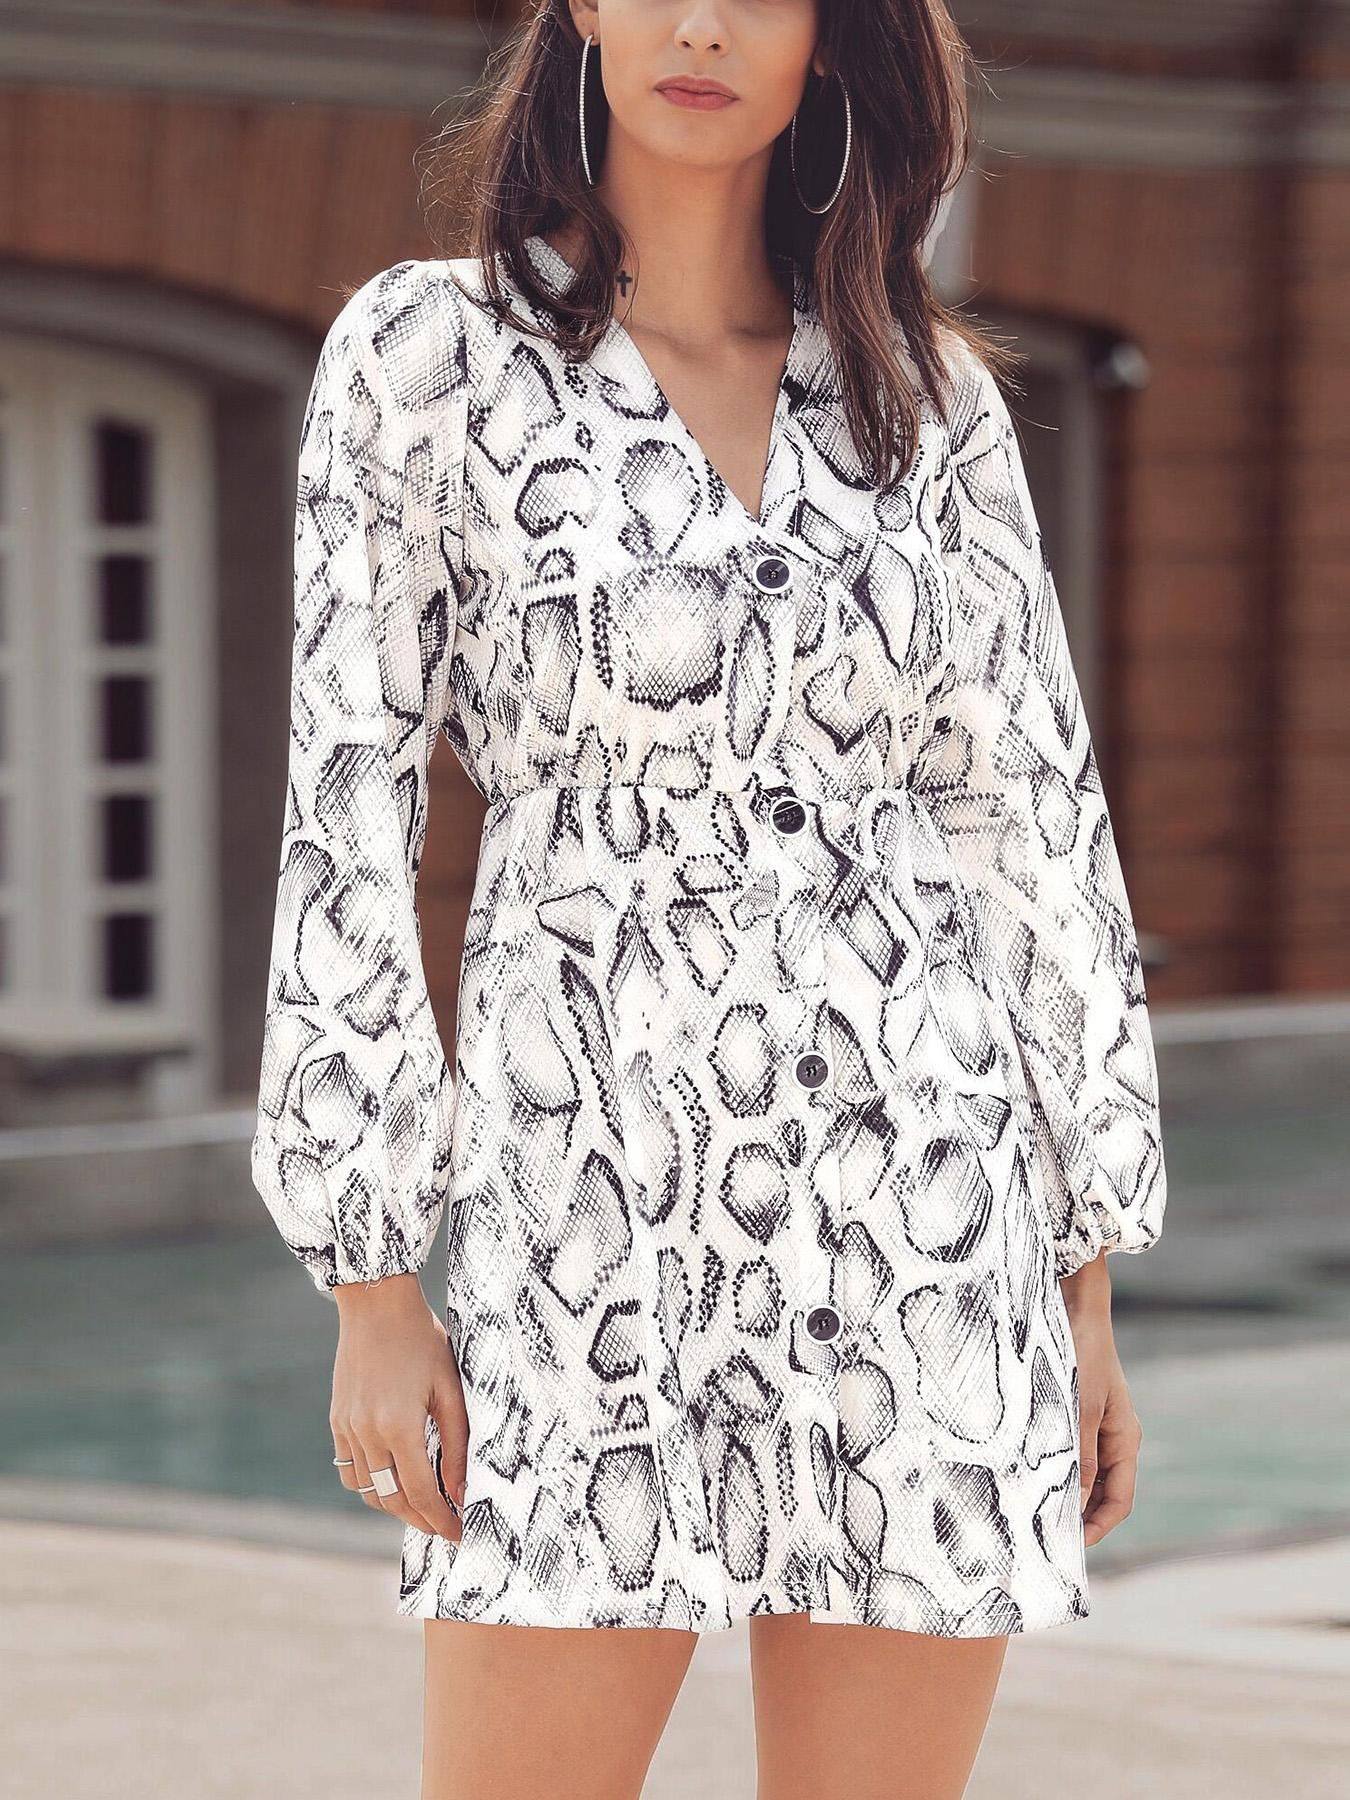 Snakeskin Print Button Design Casual Dress фото